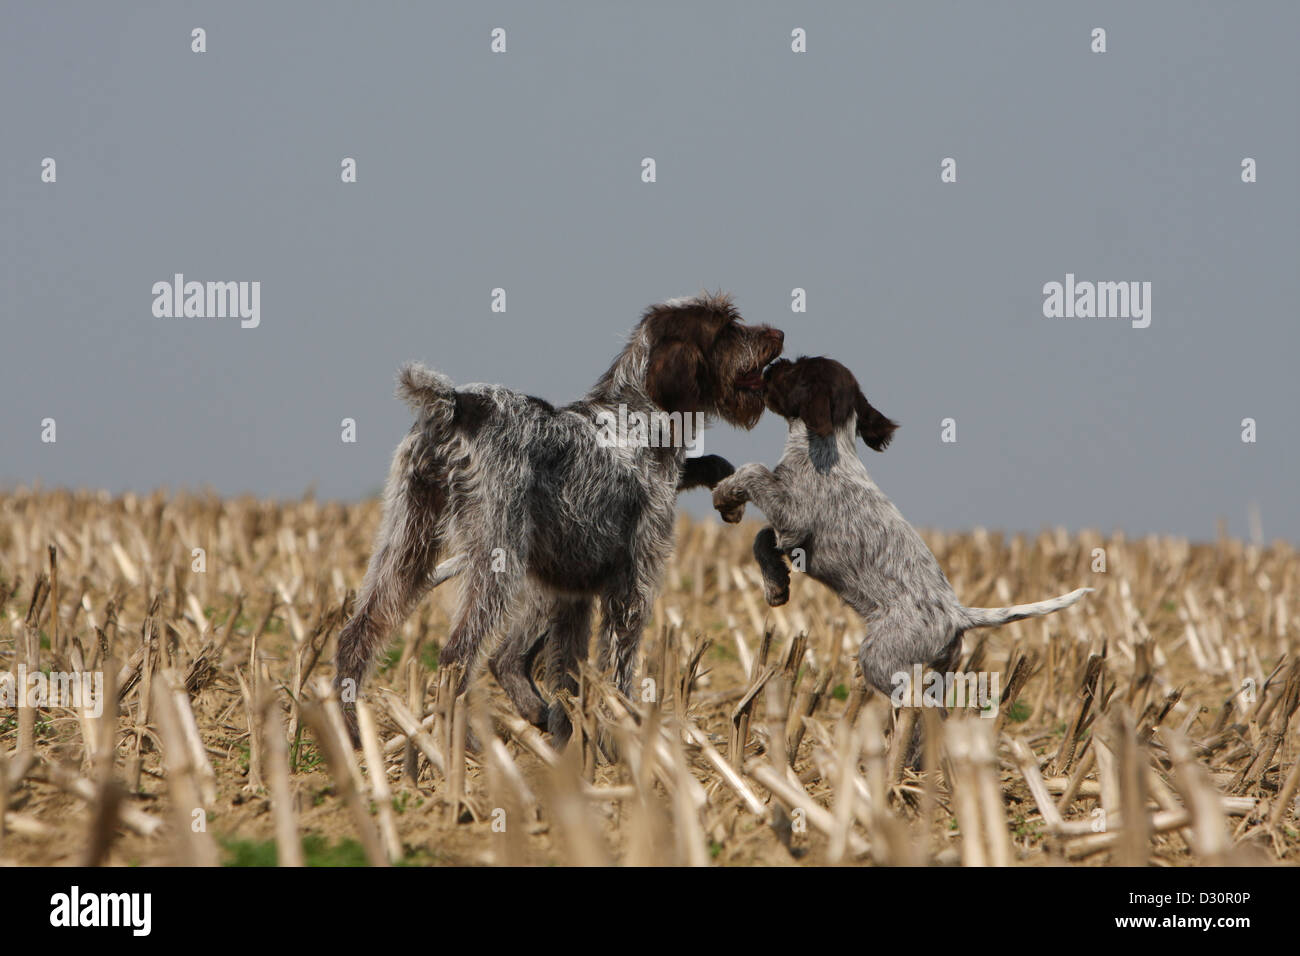 Dog Wirehaired Pointing Griffon / Korthals Griffon adult and puppy ...